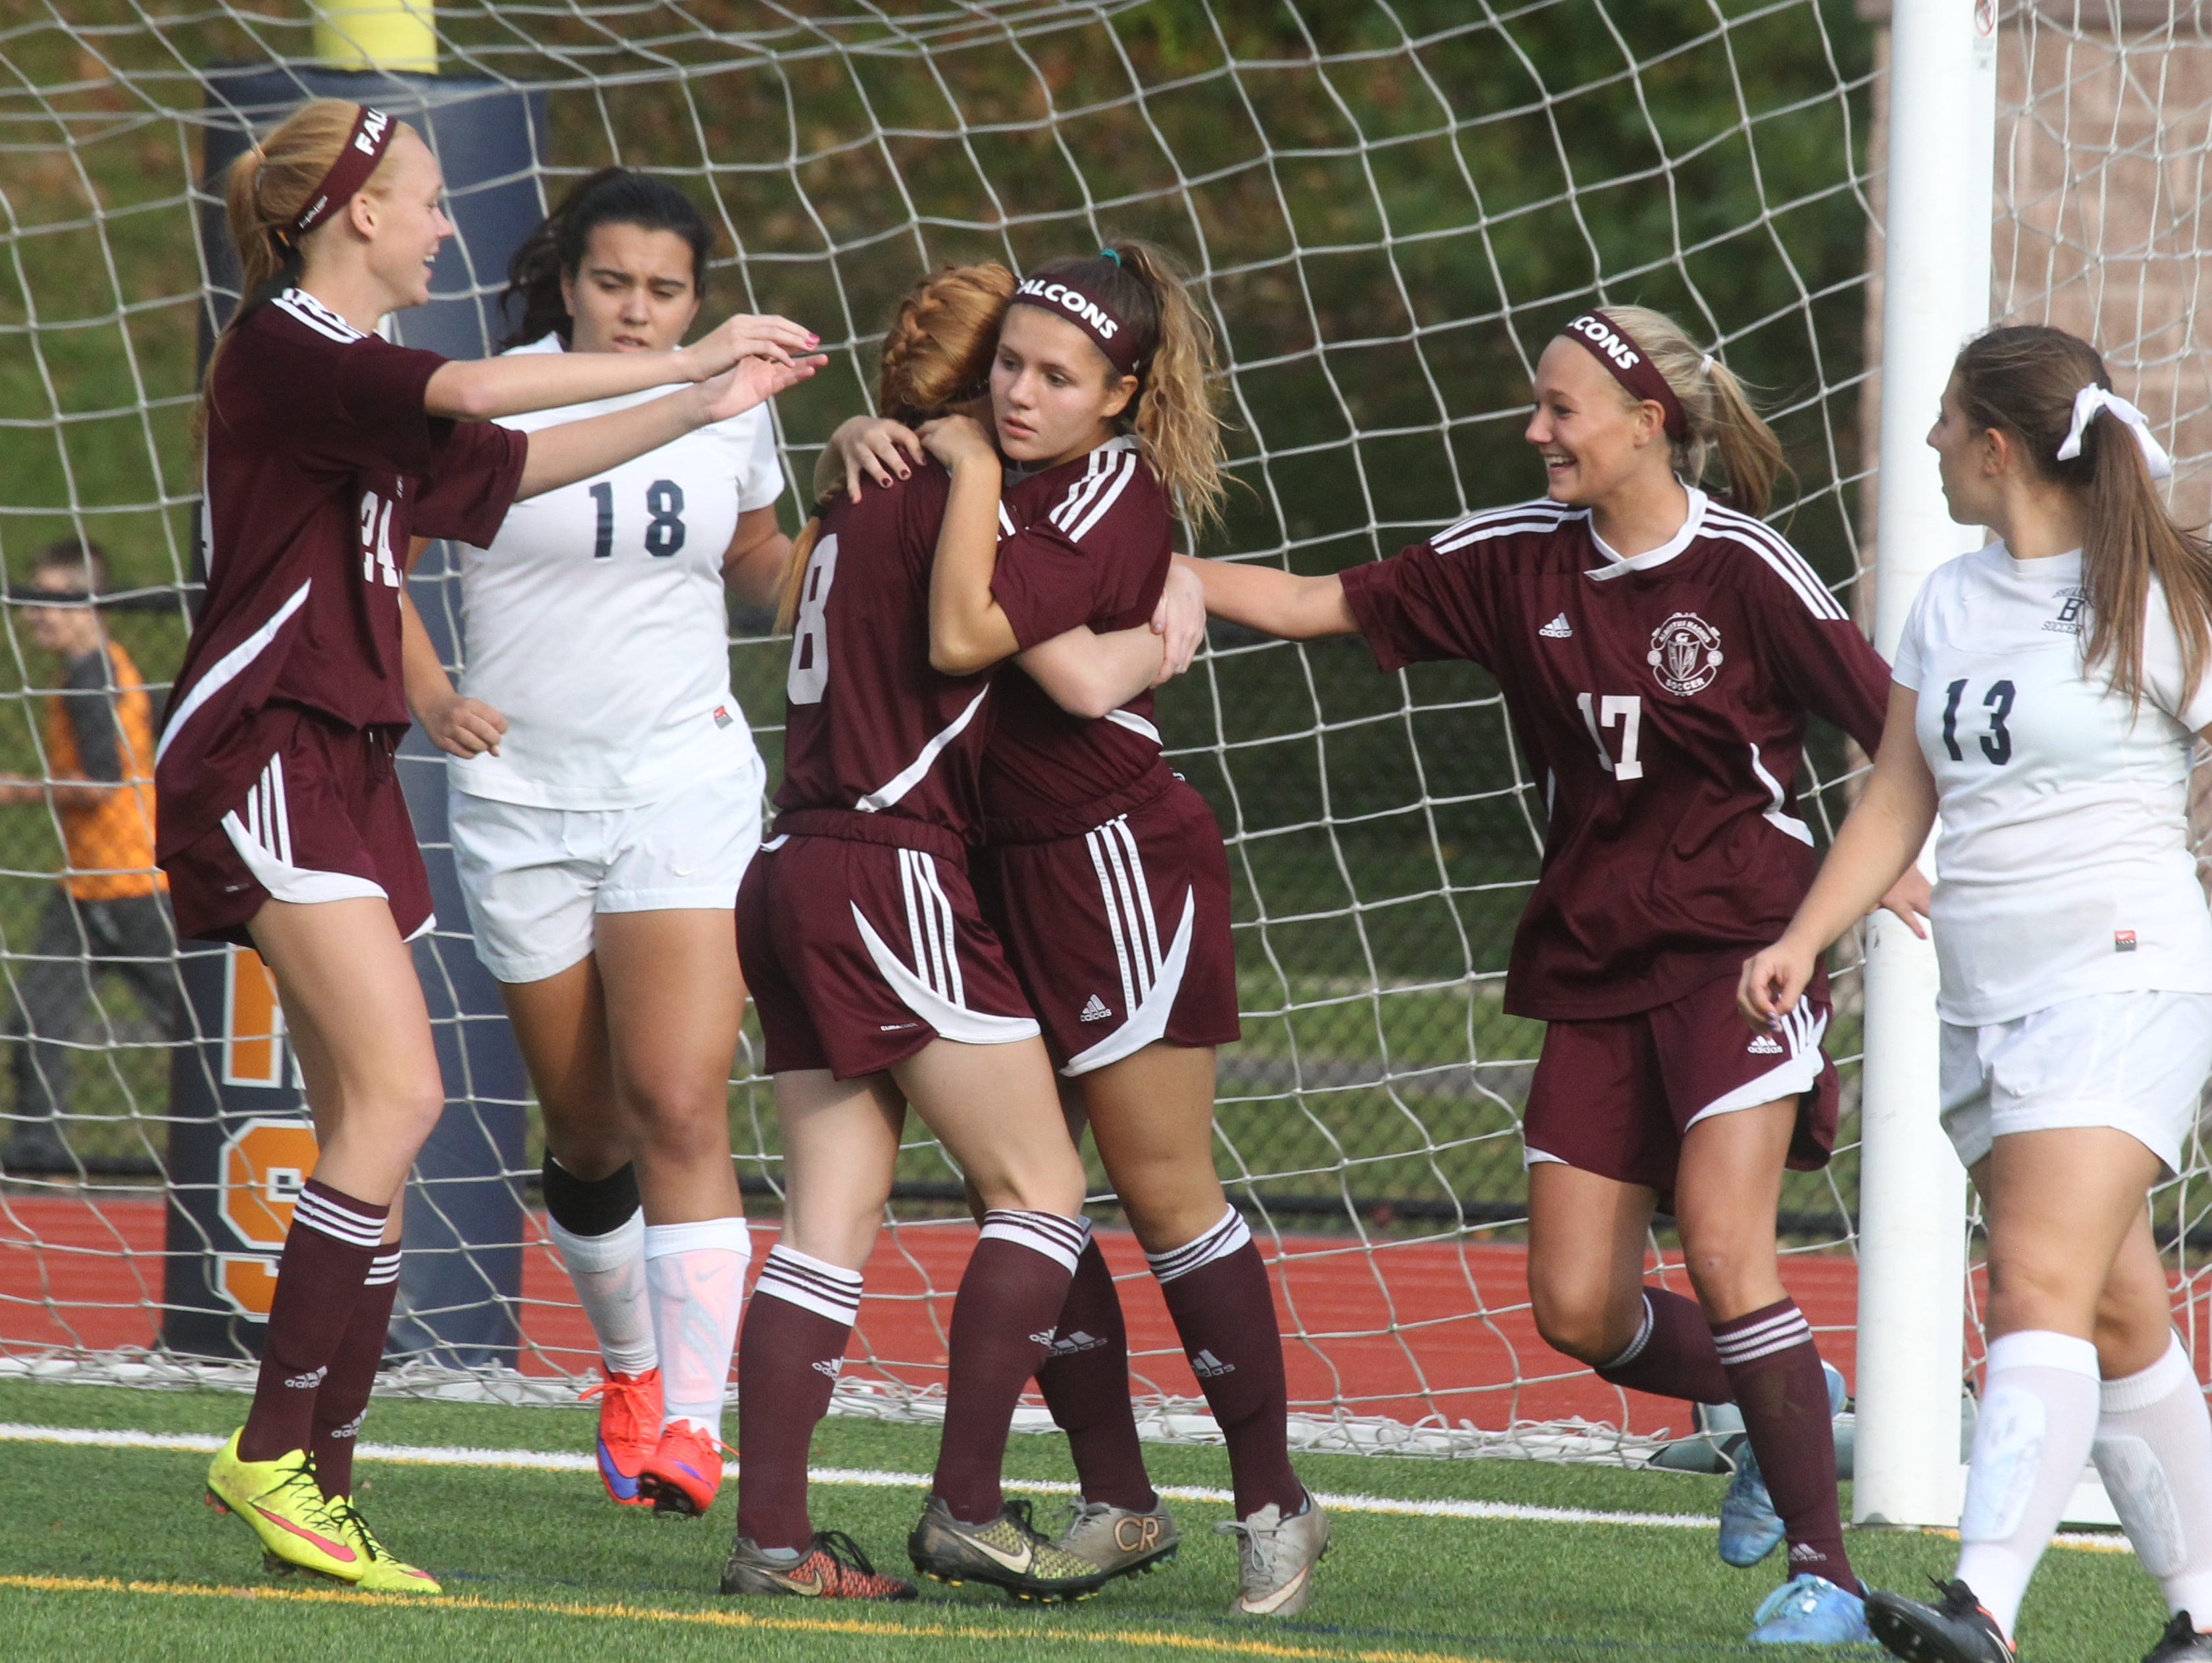 Albertus Magnus players celebrate a goal by Victoria McNamara, center, during a game at Briarcliff Oct. 8, 2015.